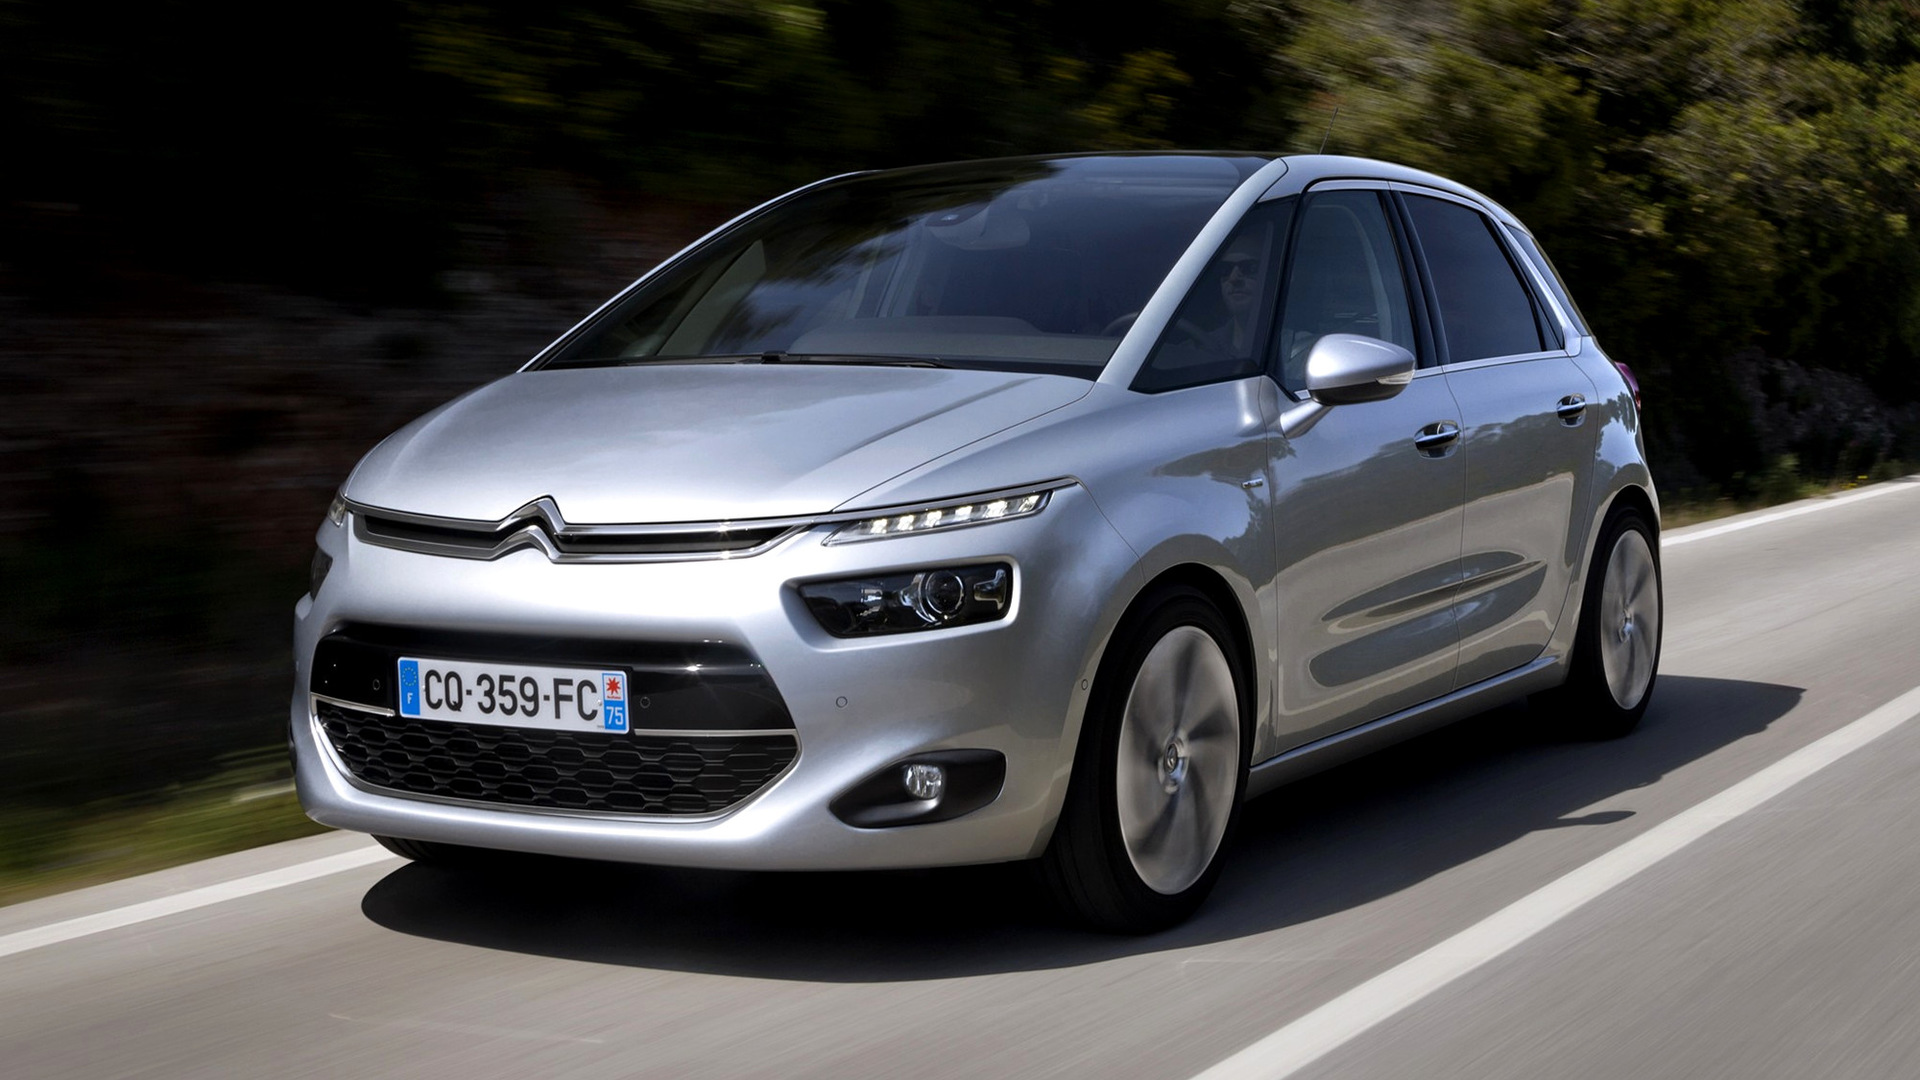 citroen c4 picasso 2013 wallpapers and hd images car pixel. Black Bedroom Furniture Sets. Home Design Ideas